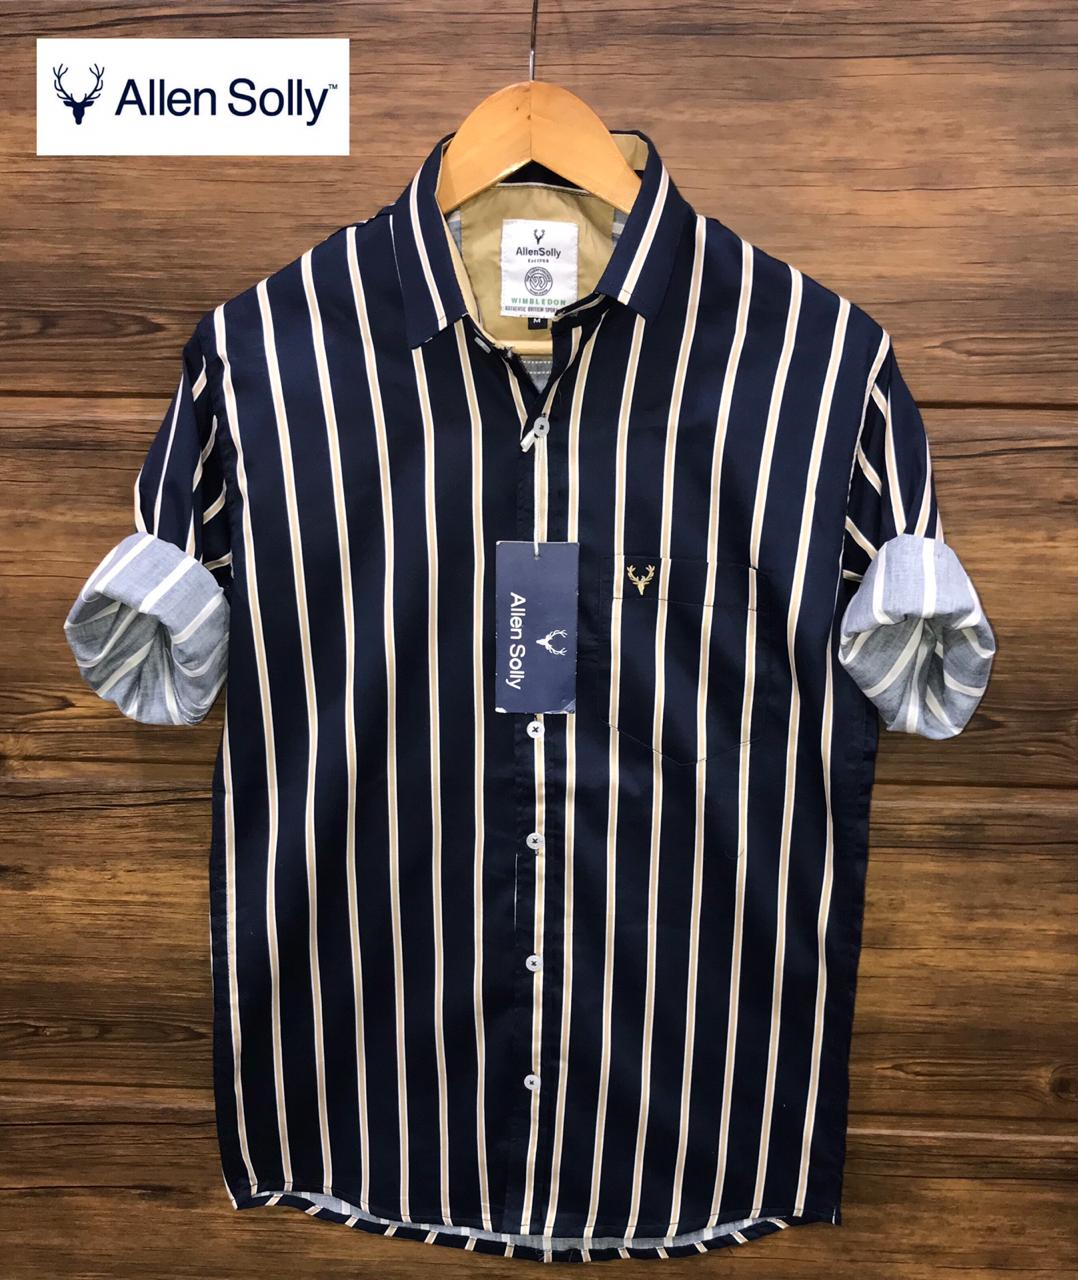 Allen Solly Shirts Black Slim High Quality Cutton